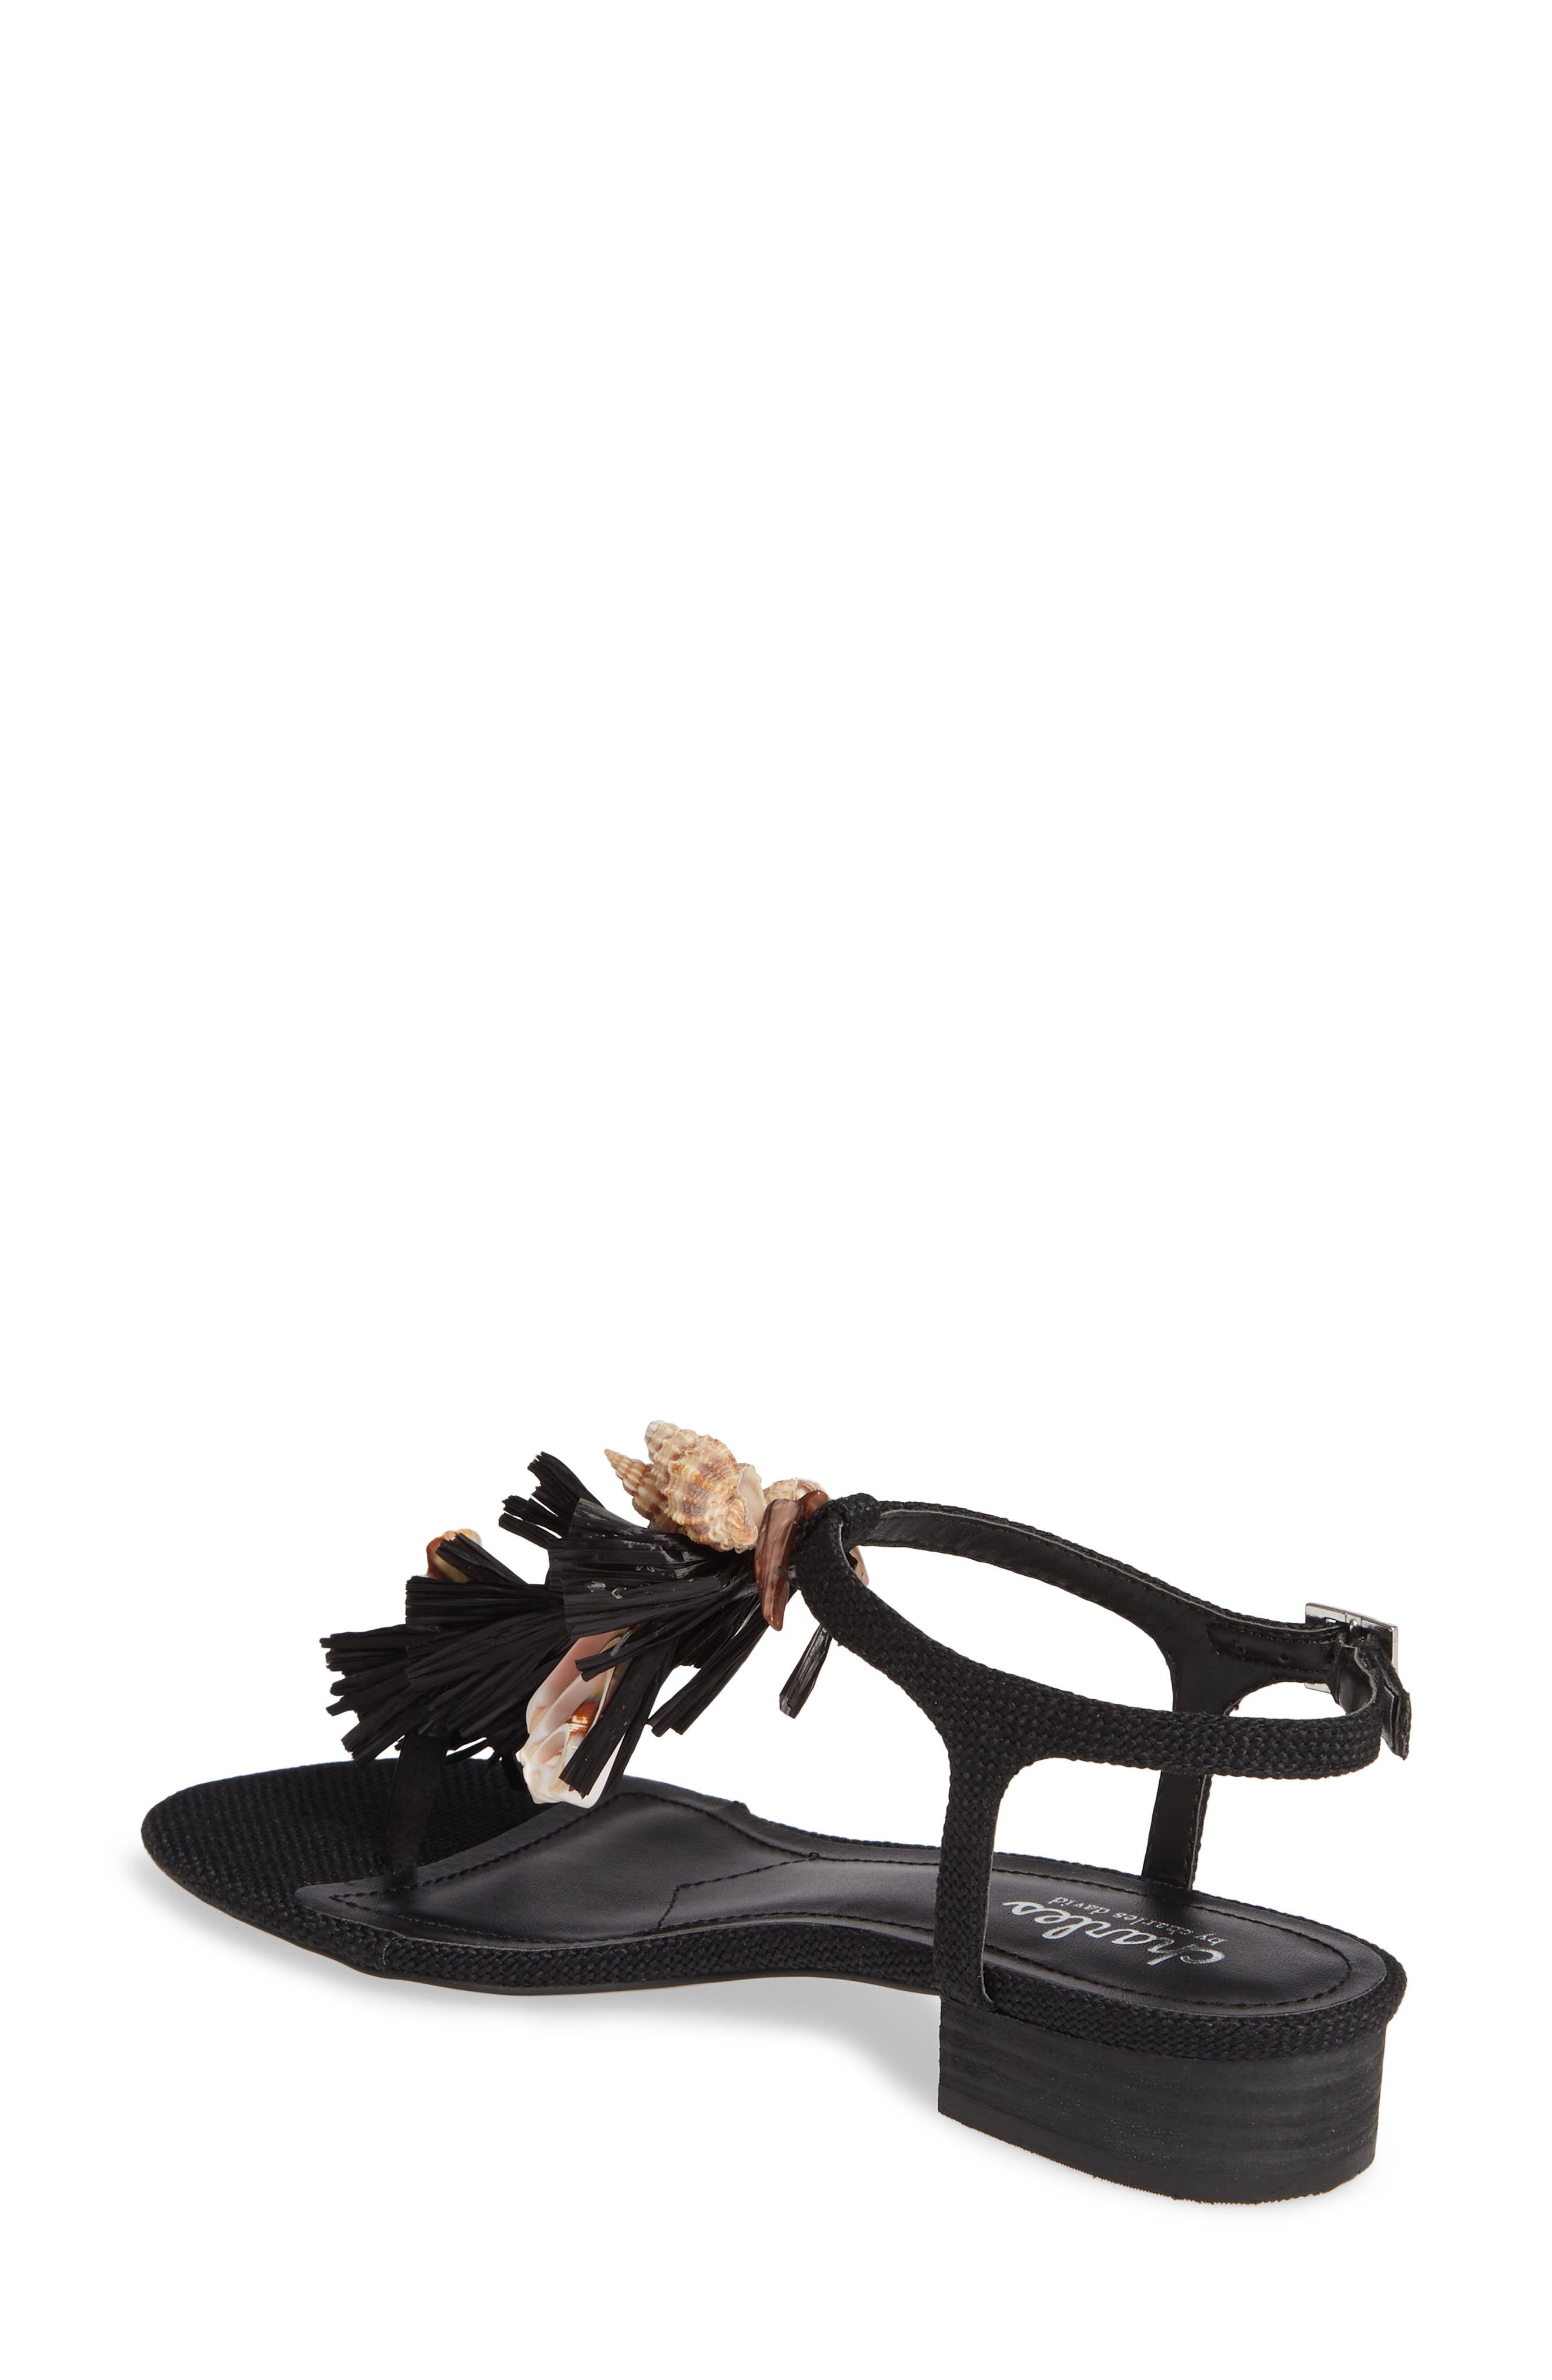 CHARLES BY CHARLES DAVID, Seashell Sandal, Alternate thumbnail 2, color, BLACK FABRIC